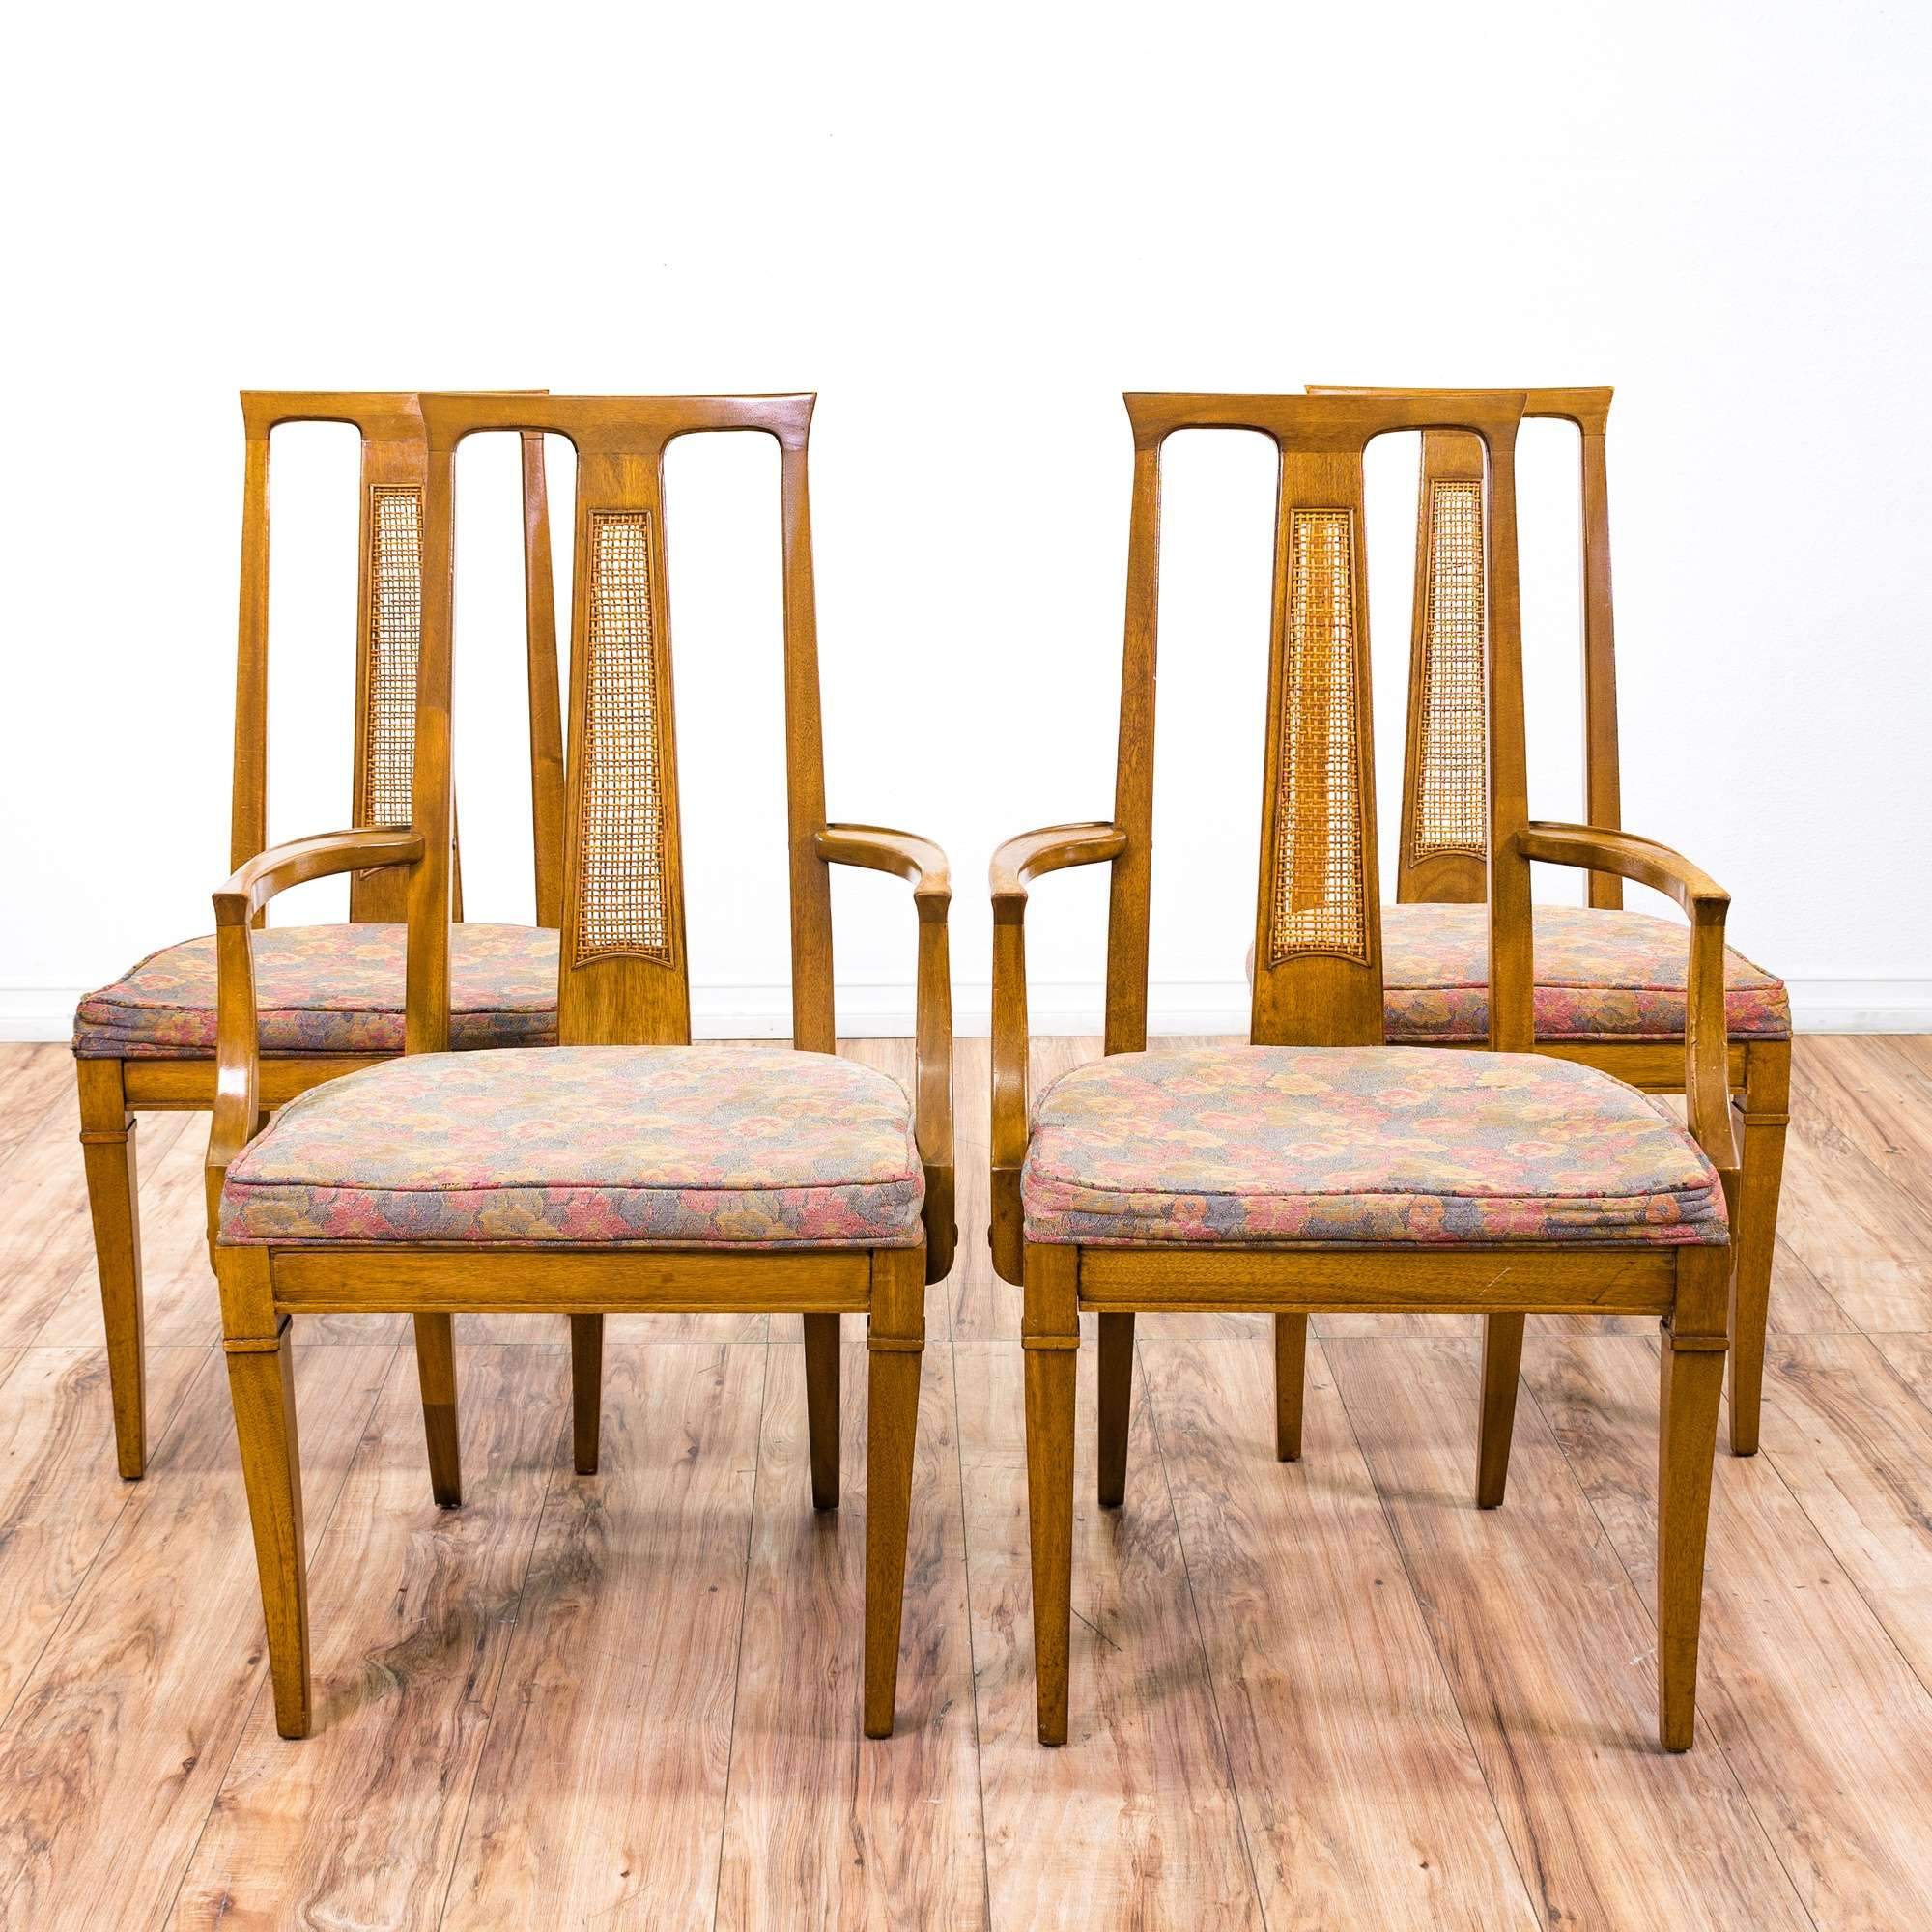 4 Mid Century Modern Cane Back Dining Chairs Loveseat Online Auctions San Diego